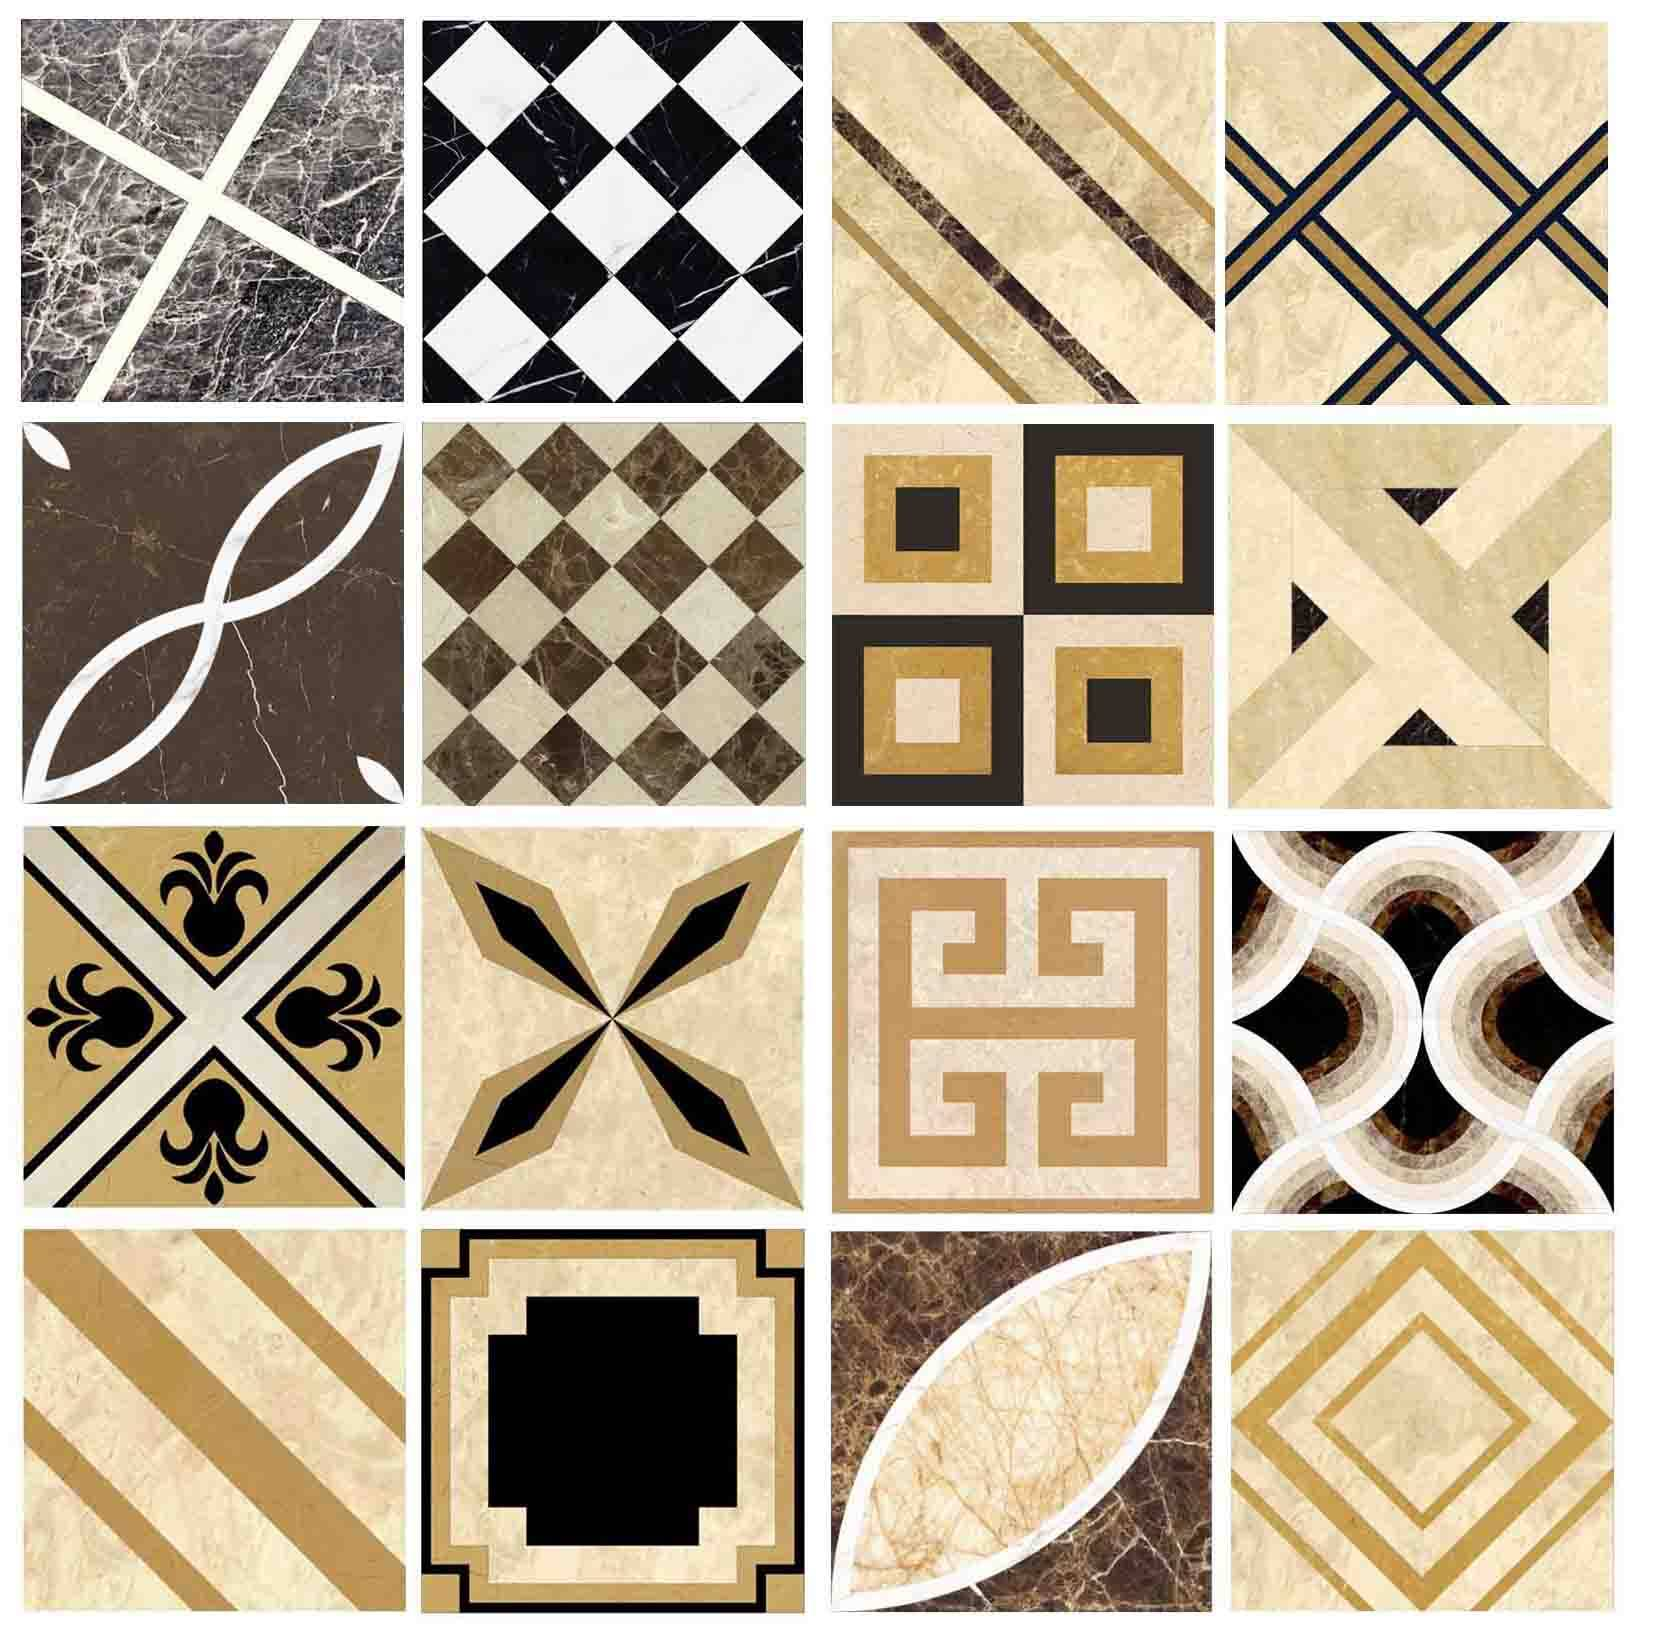 Magic tiles, marble stone, water jet pattern, flooring, interior decoration, wall tiles